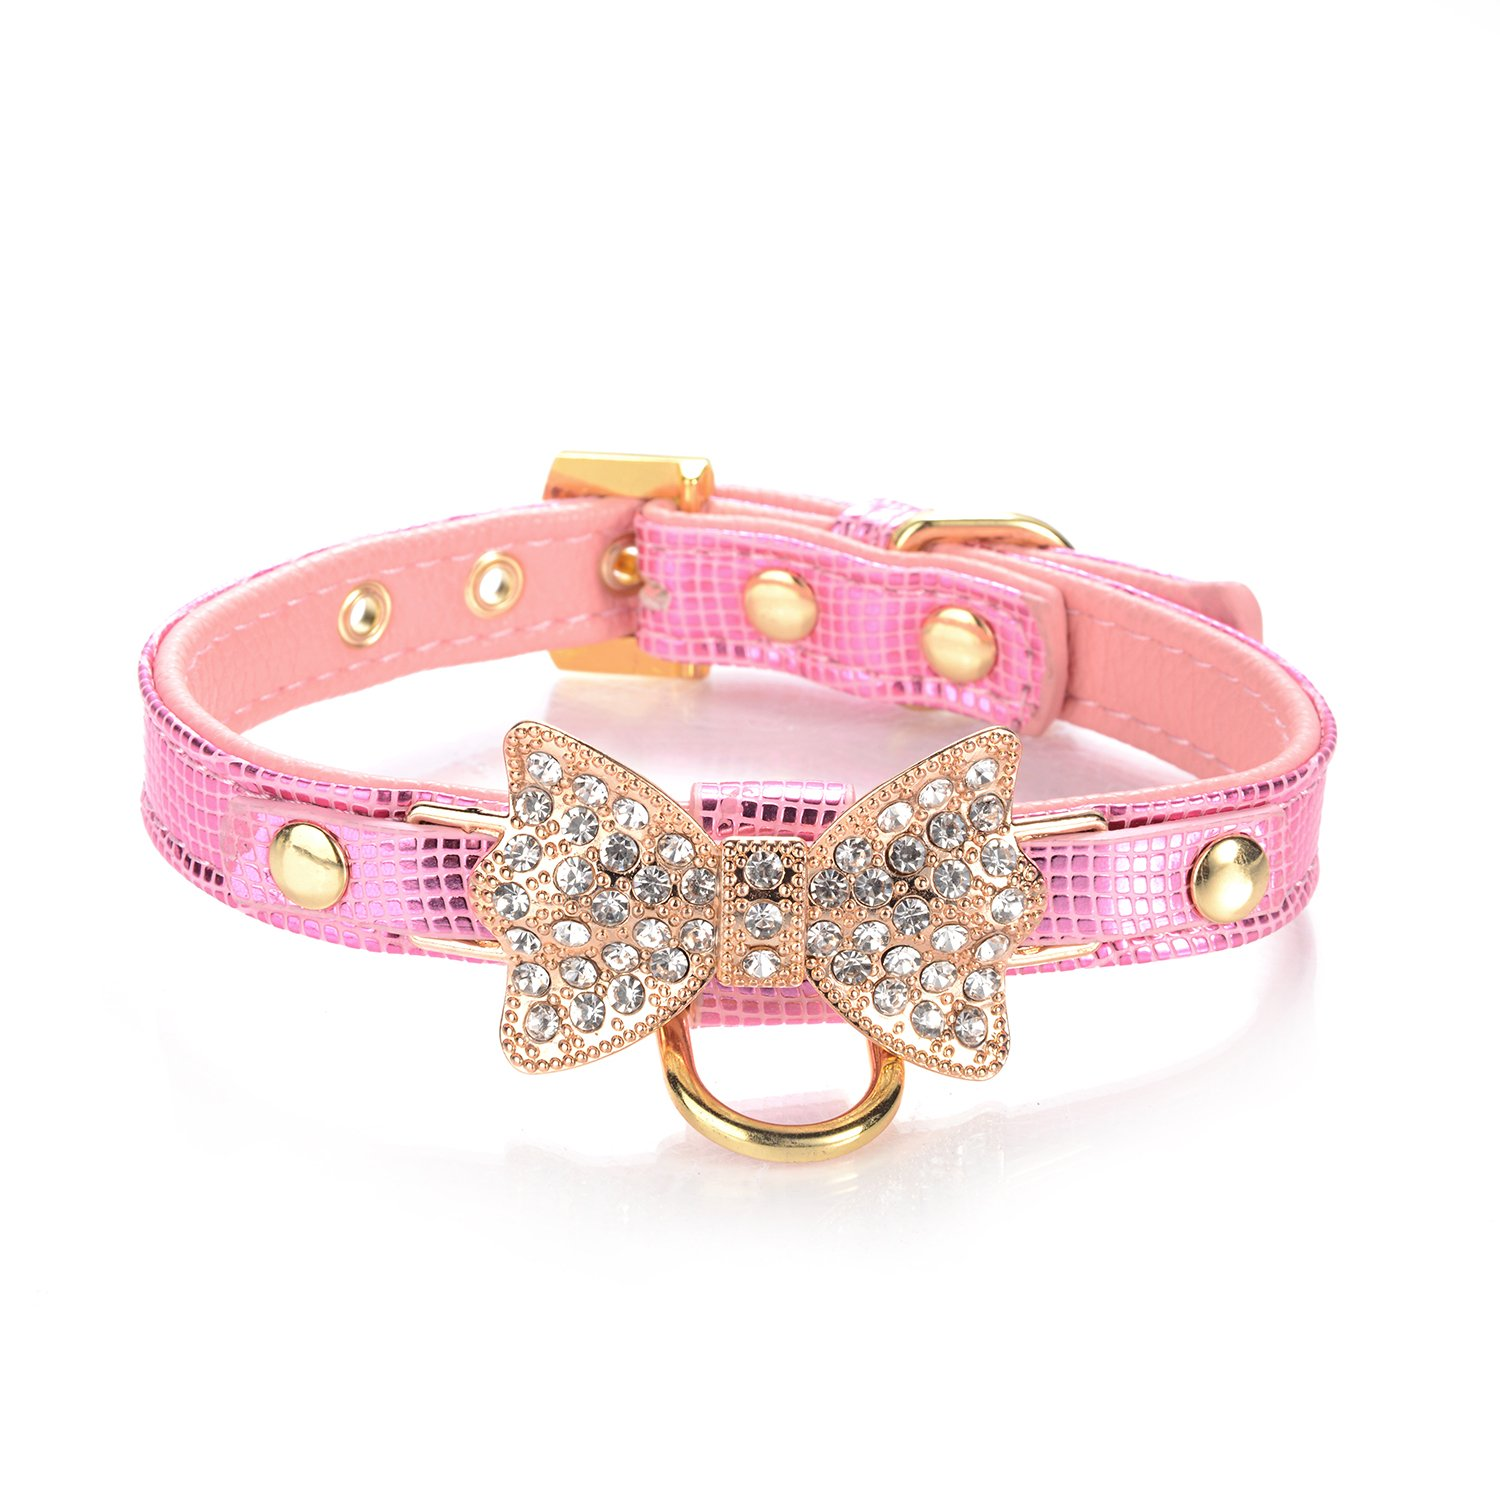 LOVPE Gold Bling Diamond Giltter Leather Fashion Collar with Ring for Tags for Small Dogs/Cats,[Adjustable Collars for puppy/kitten] (S, Pink)